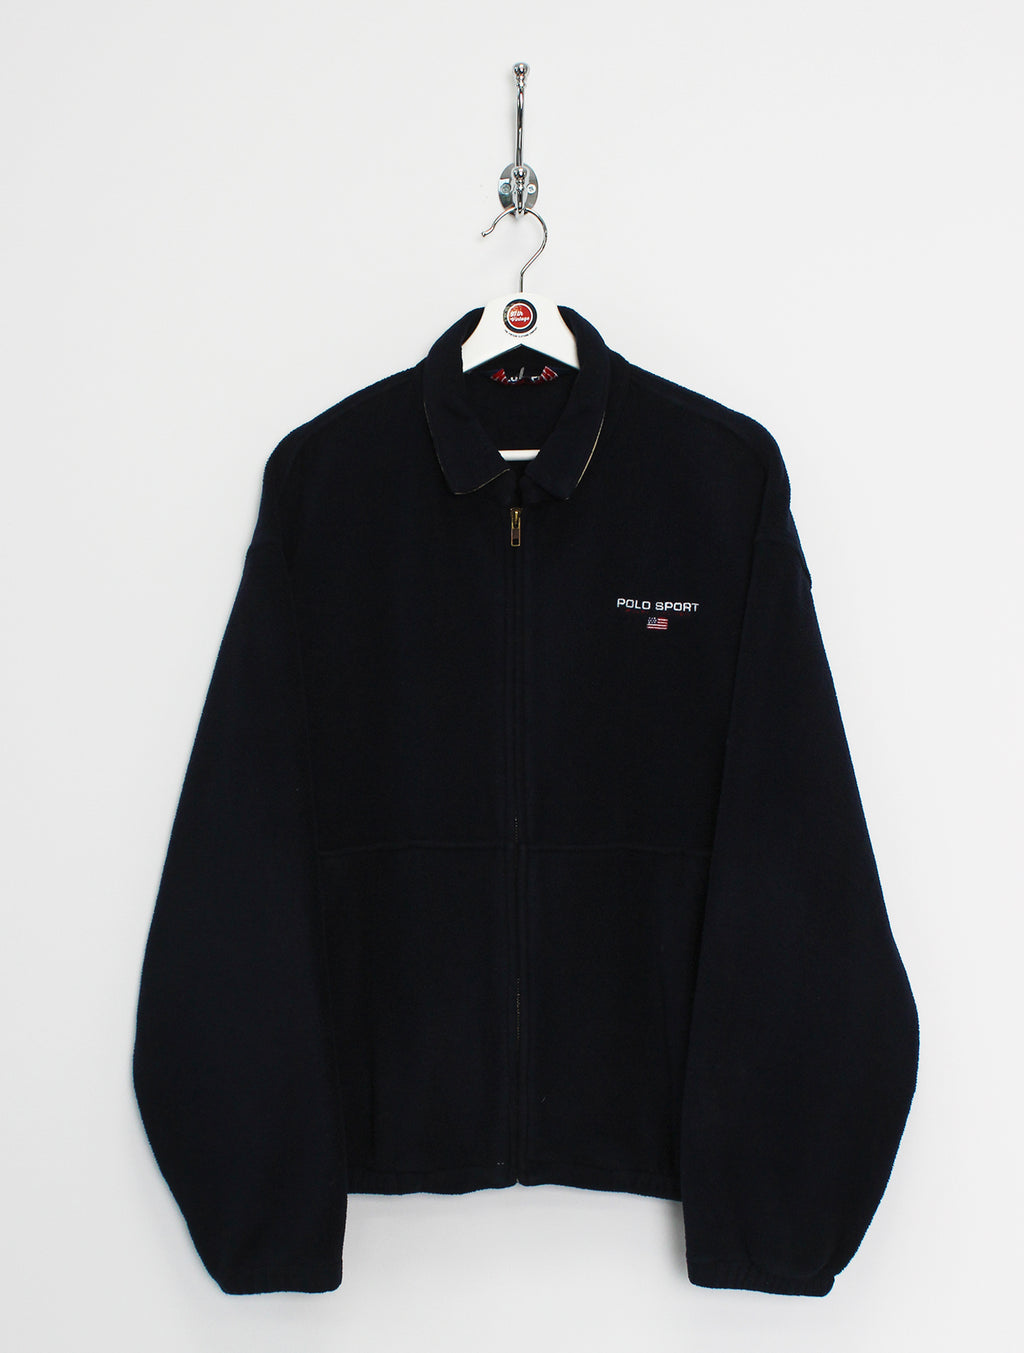 Ralph Lauren Polo Sport Fleece Jacket (L)